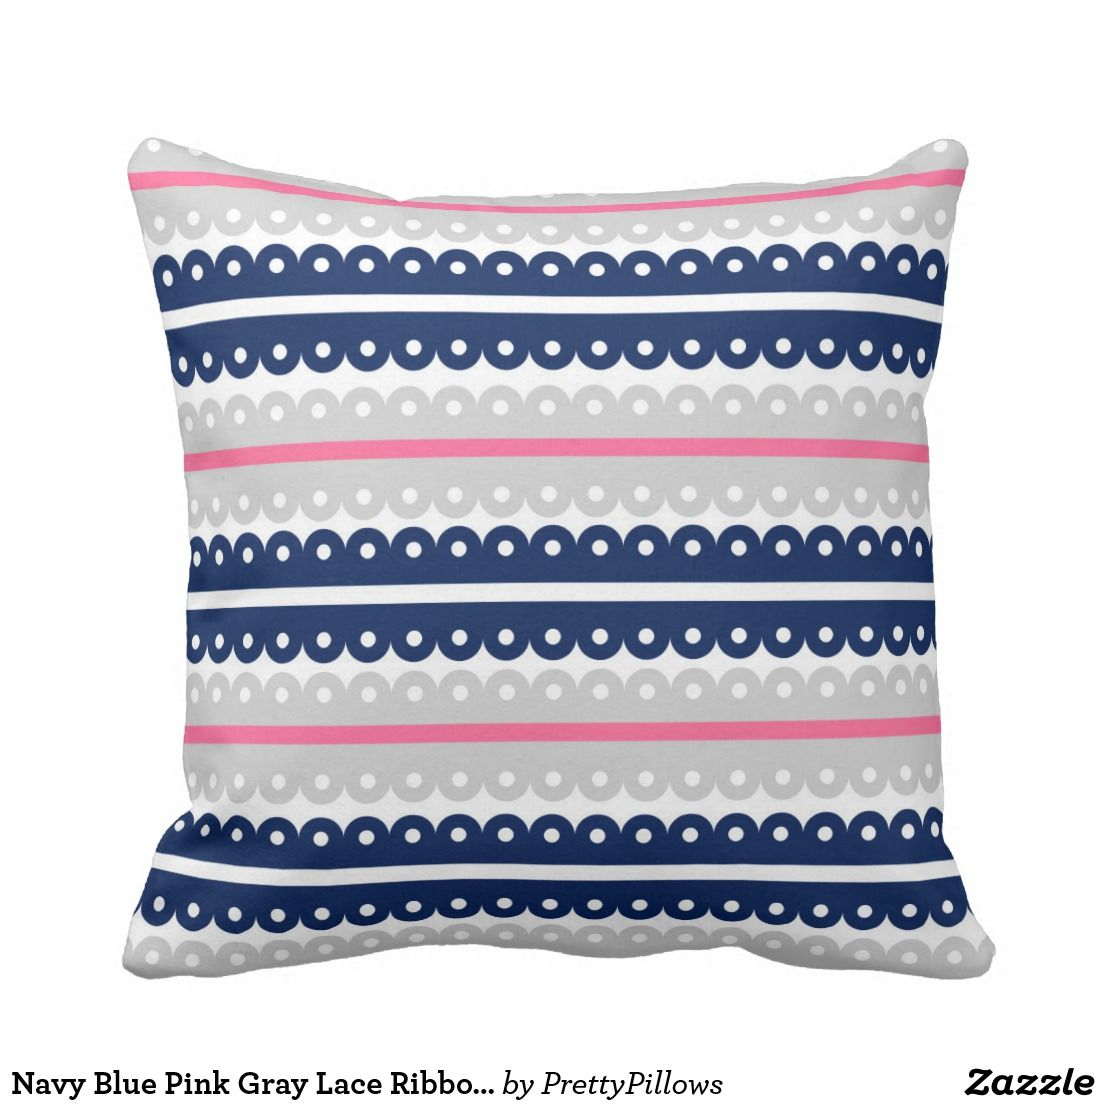 Navy blue pink grey lace ribbon stripe pillow mixers pillows and